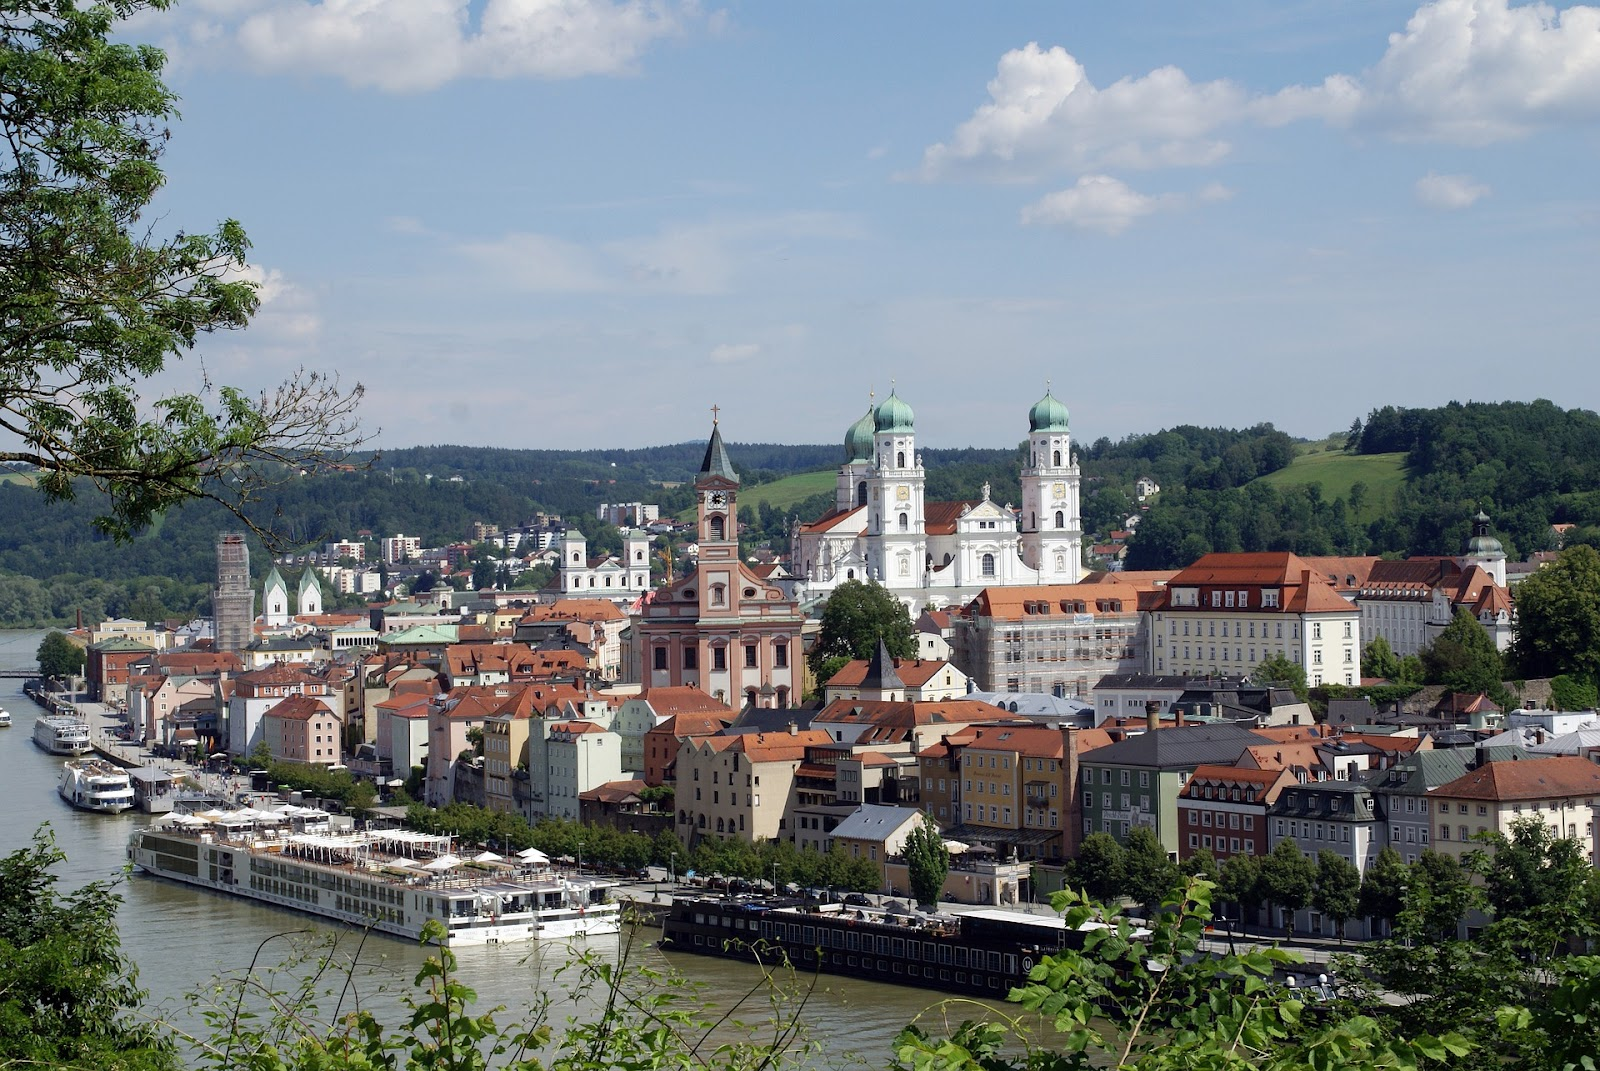 passau small old town medieval buildings and white decorative church seen from across river with cruise boats